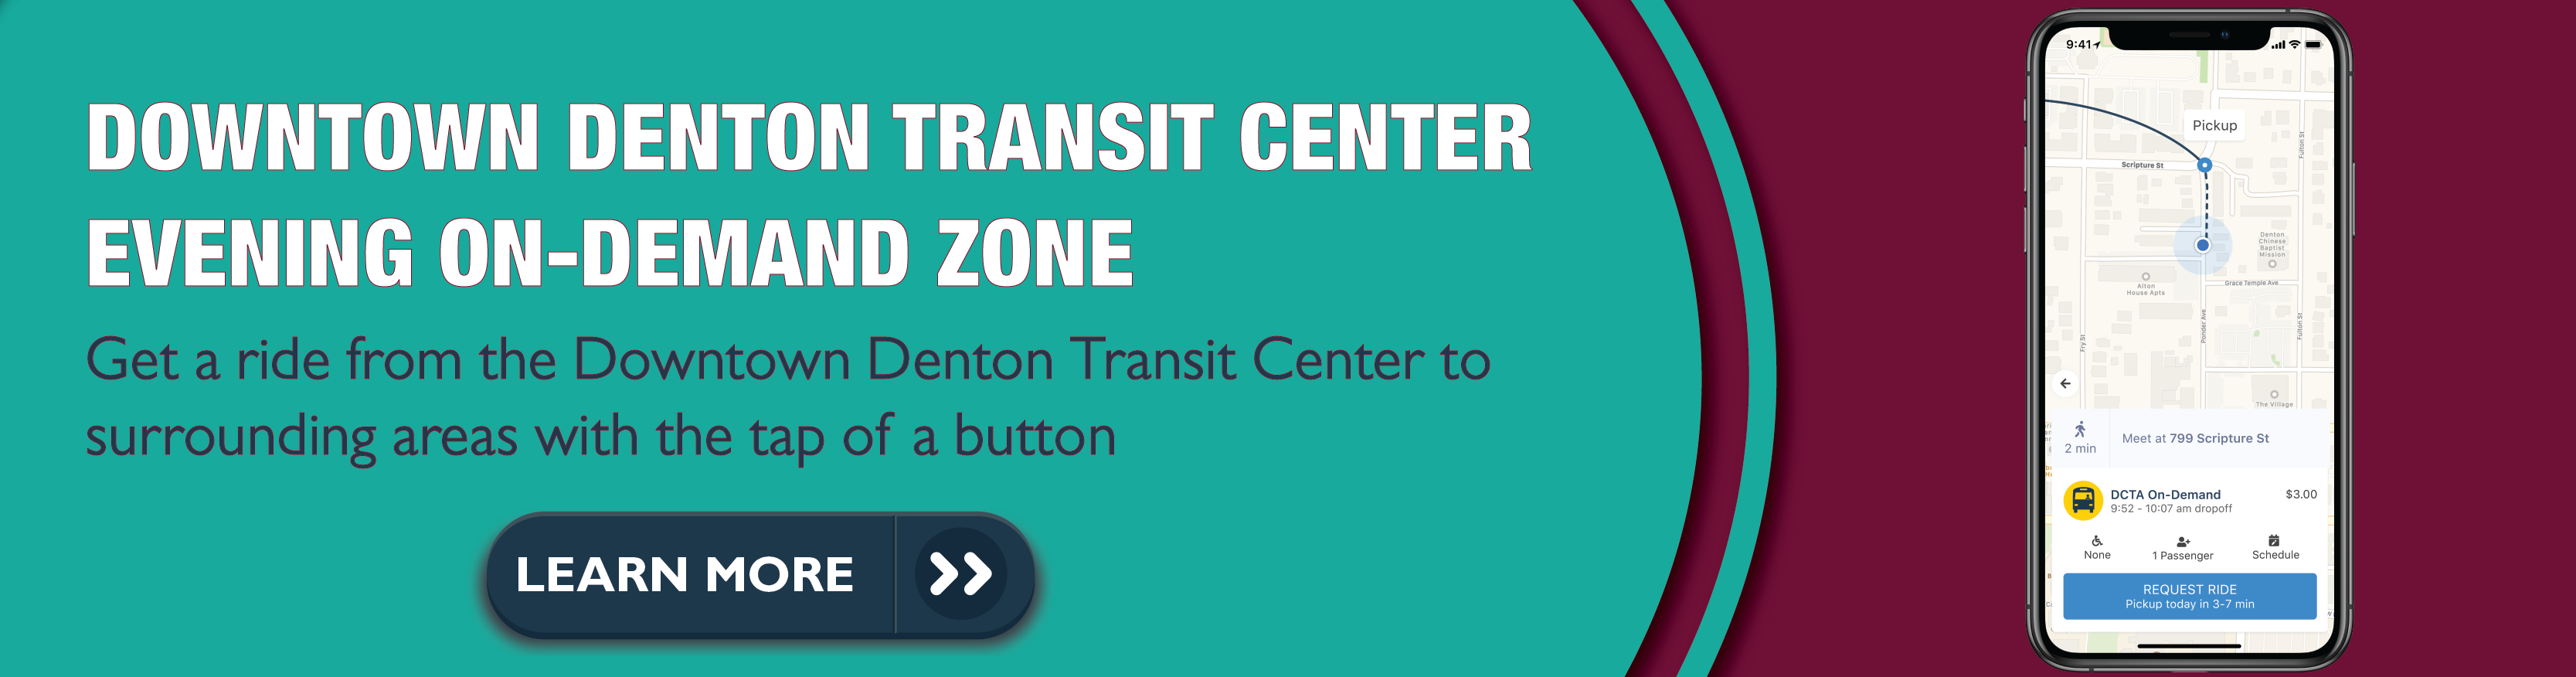 "Image of phone with DCTA On-Demand app with text ""Downtown Denton Transit Center Evening On-Demand Zone. Get a ride from the DDTC to surrounding areas with the tap of a button"""